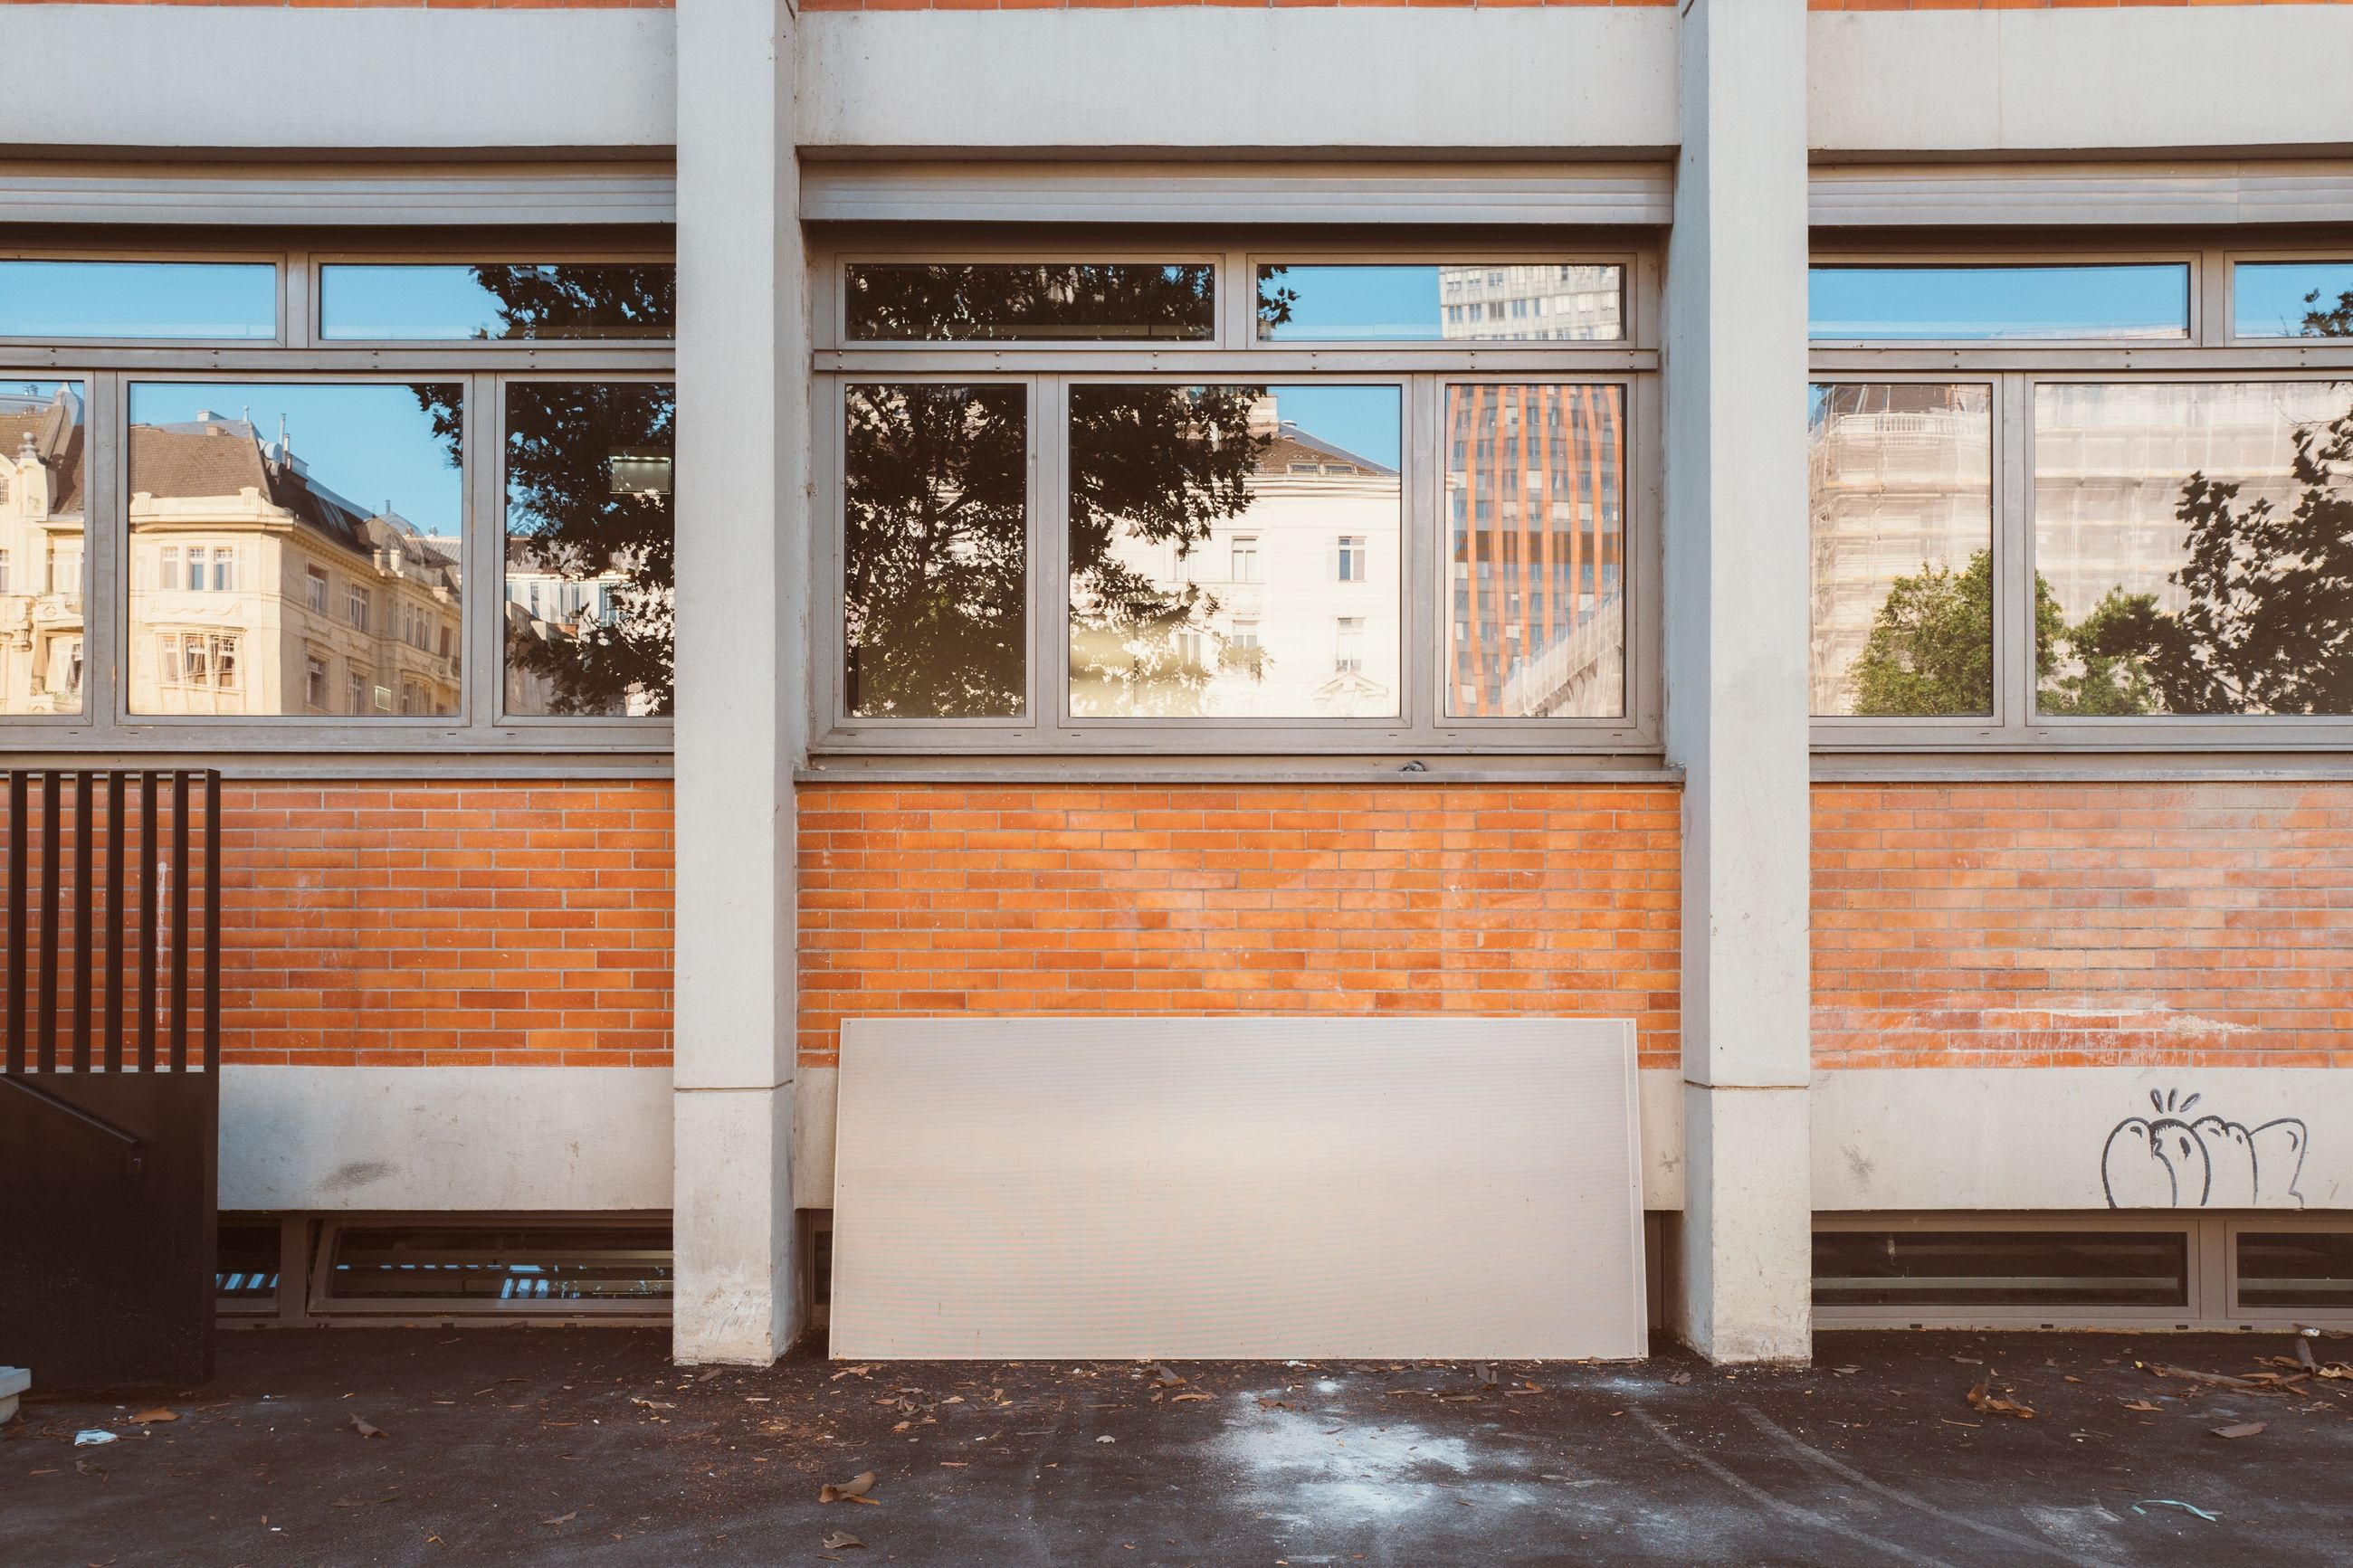 window, architecture, no people, built structure, day, glass - material, indoors, transparent, building, flooring, empty, absence, wall, nature, wall - building feature, cold temperature, entrance, seat